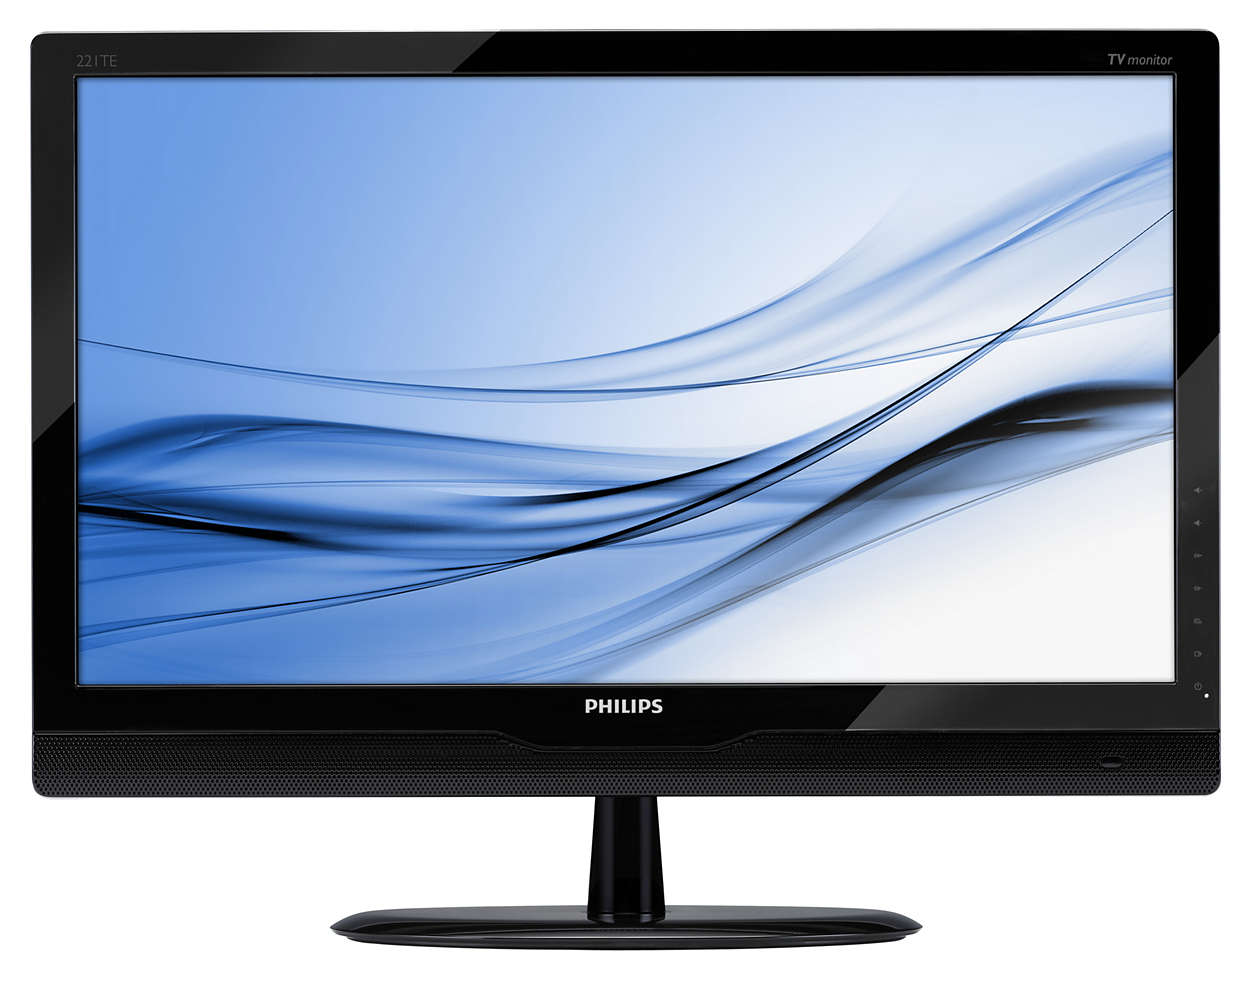 LED monitor with Digital TV tuner 9TE9LB/9  Philips